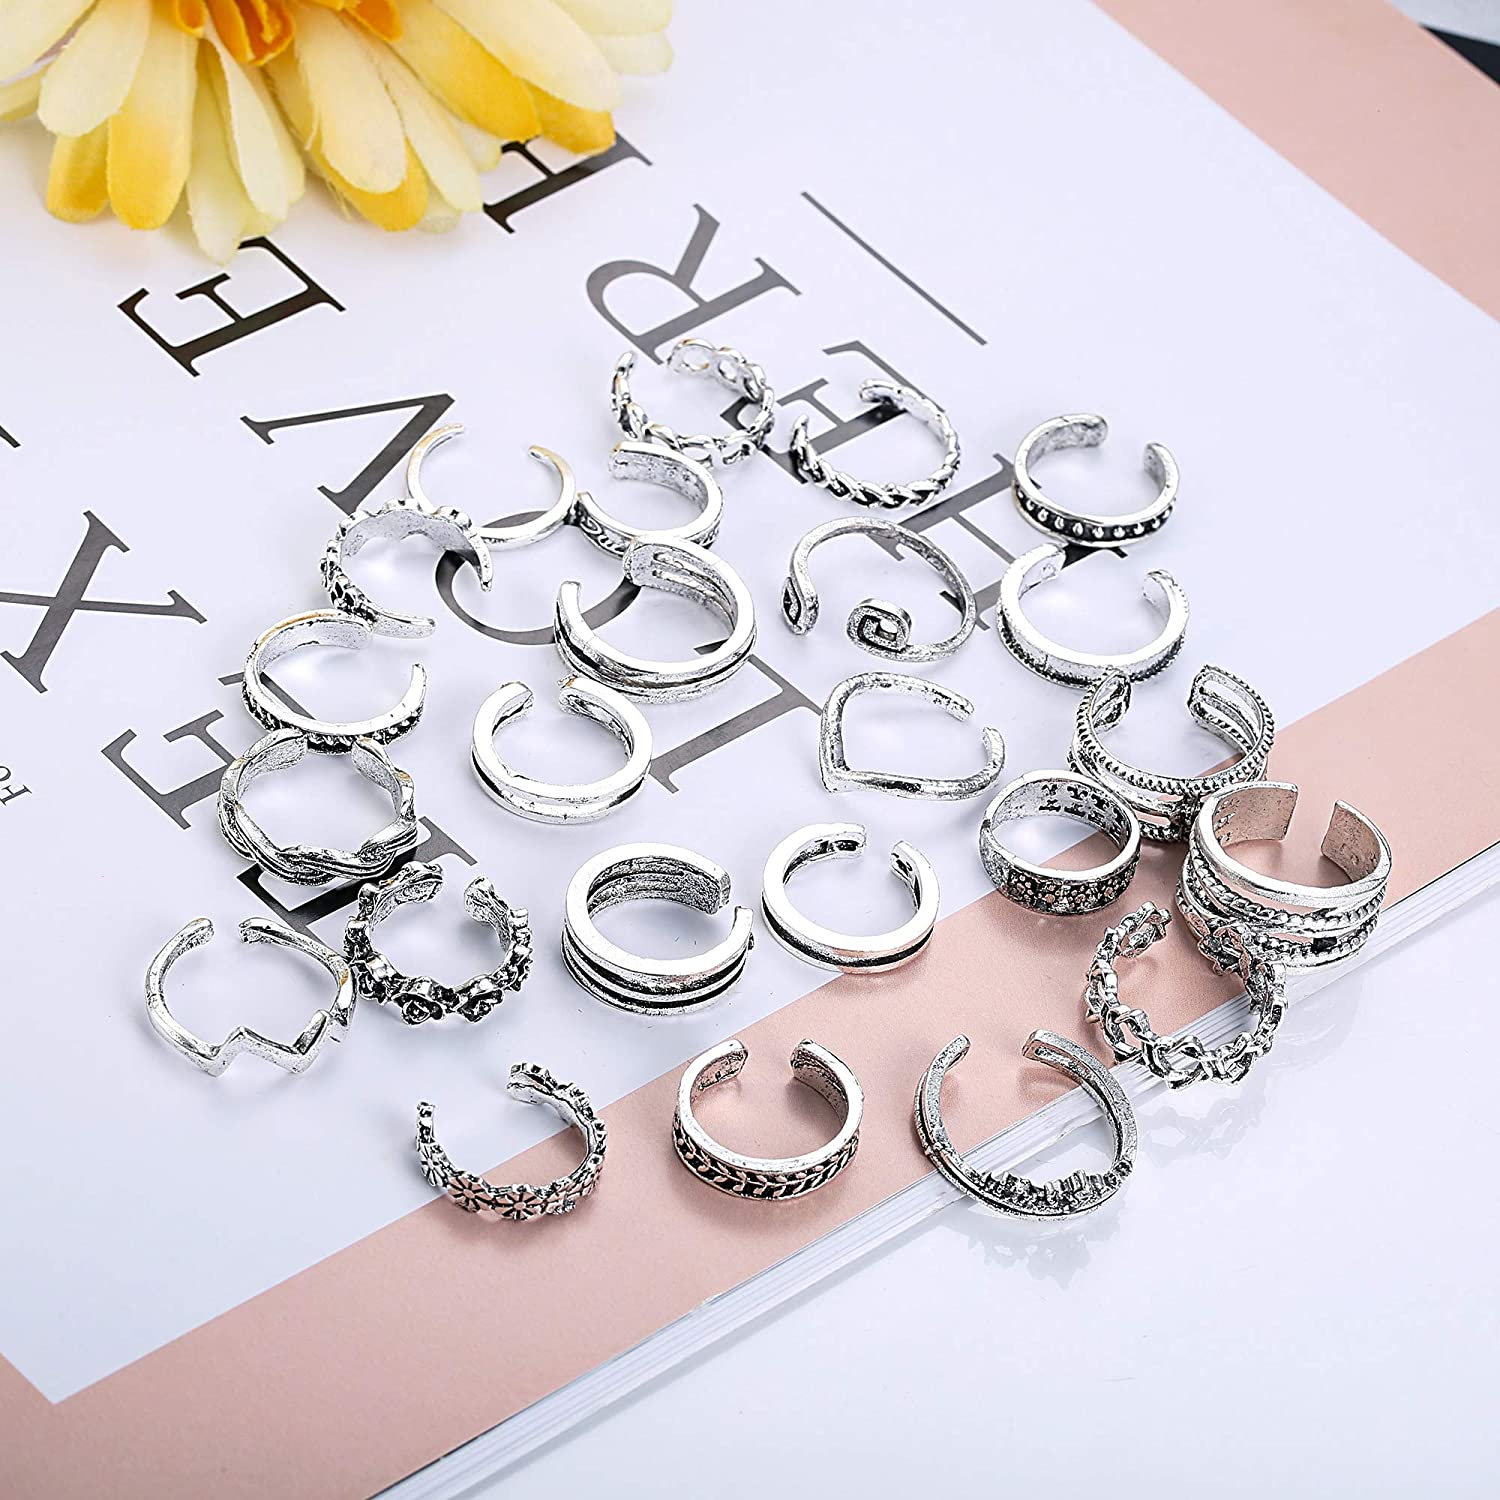 Finrezio 24PCS Open Toe Rings Set for Women Girls Various Types Knuckle Ring Vintage Retro Finger Ring Adjustable